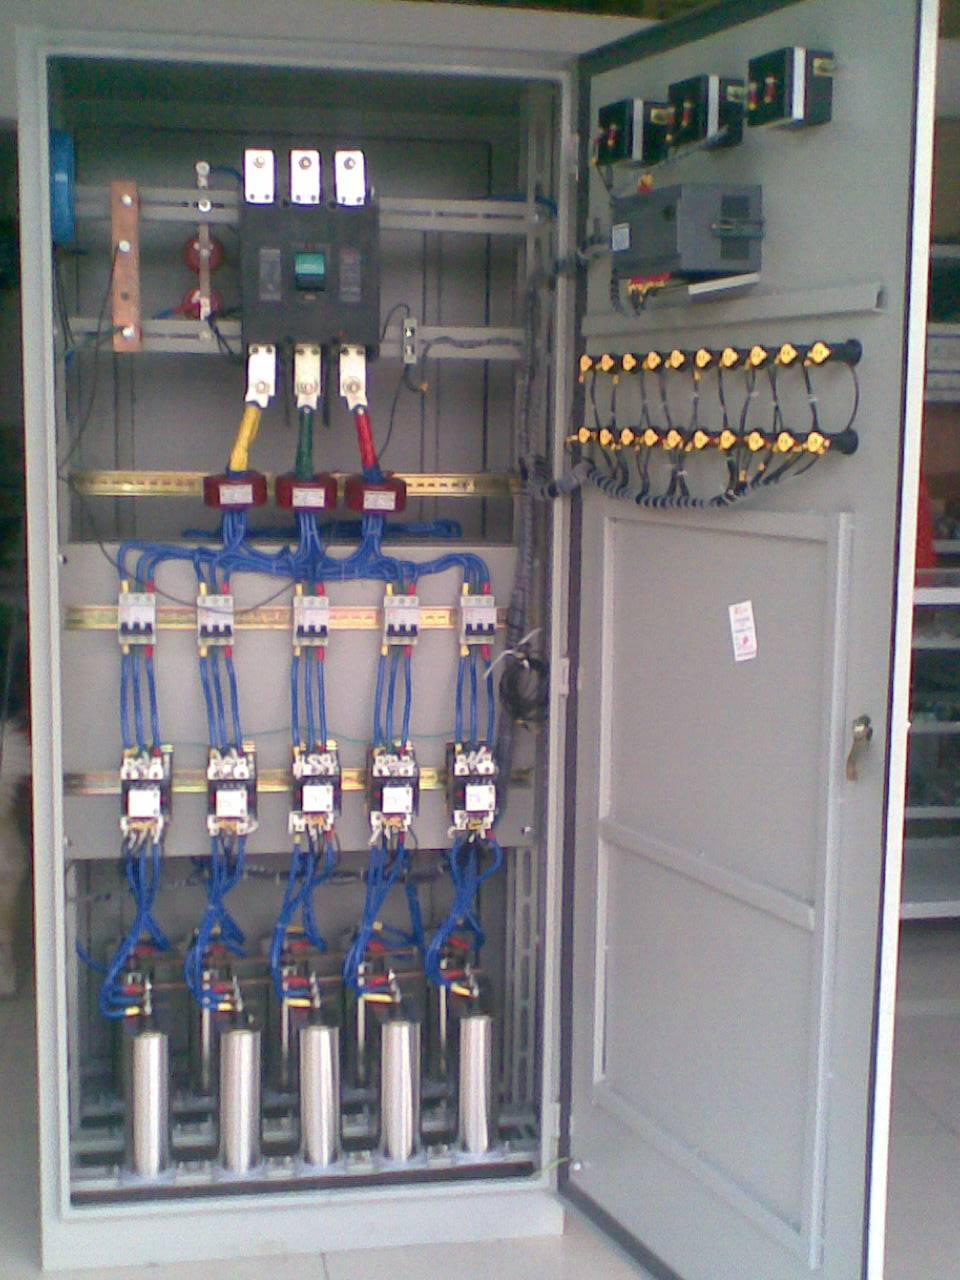 Low voltage shunt capacitor types of reactive power compensation, lv capacitance compensation for tr